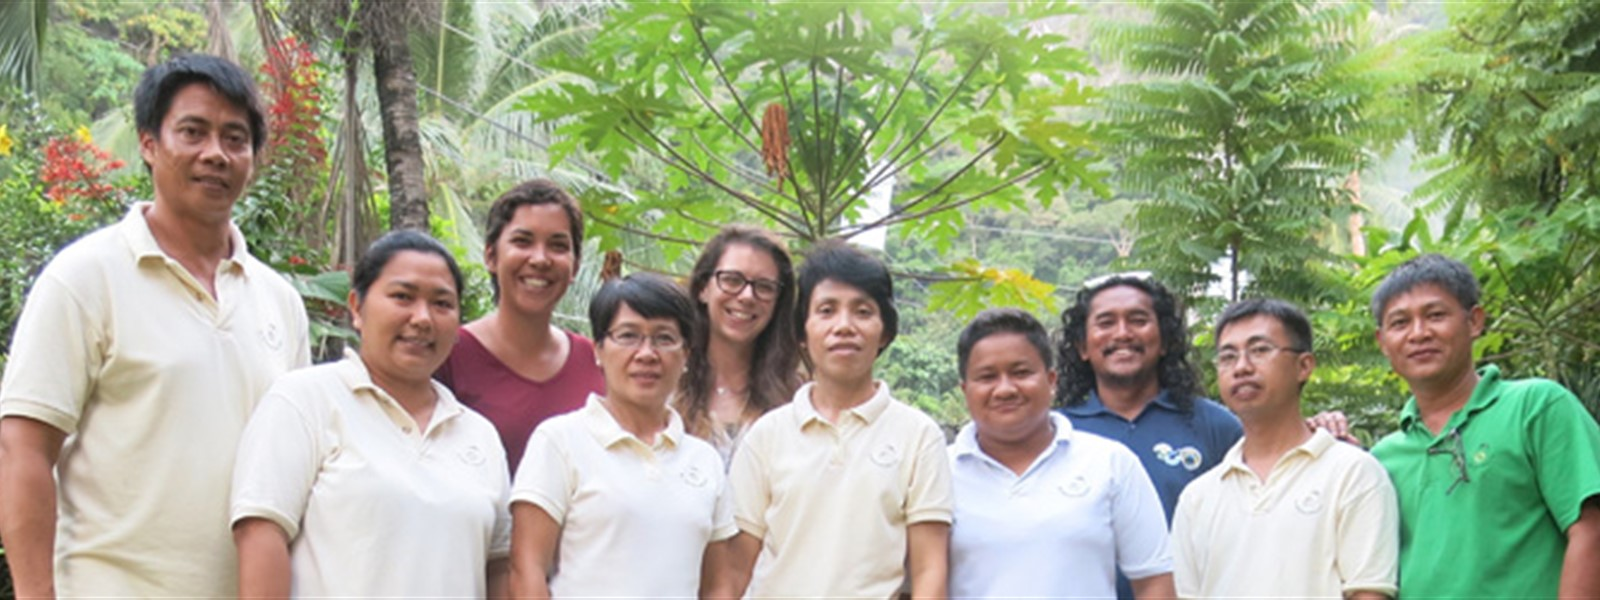 Picture of staff from The El Nido Foundation and Local Government Unit who completed Green Fins training.